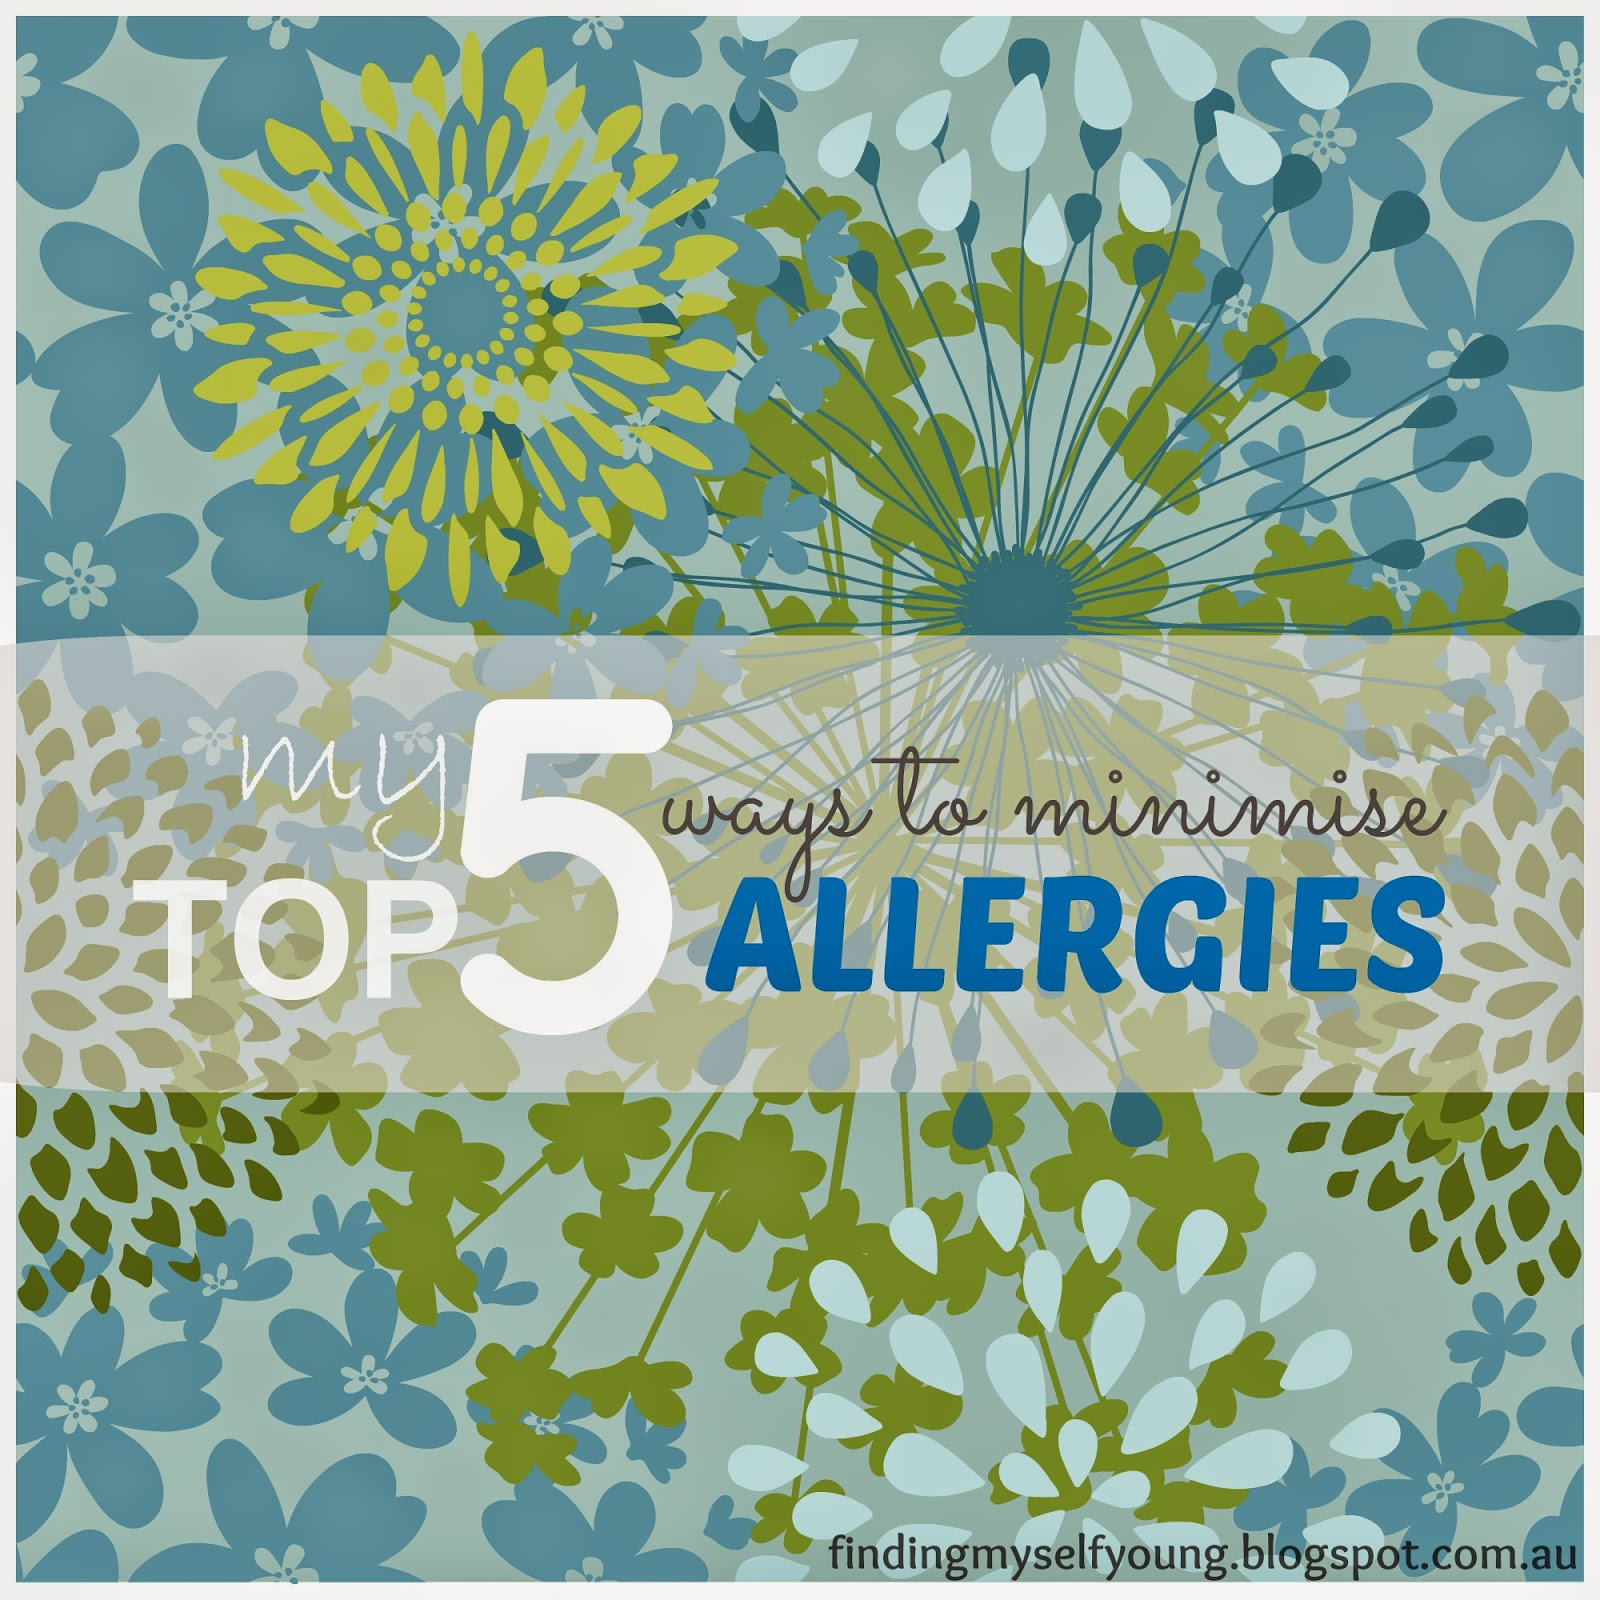 top five ways to minimise allergies